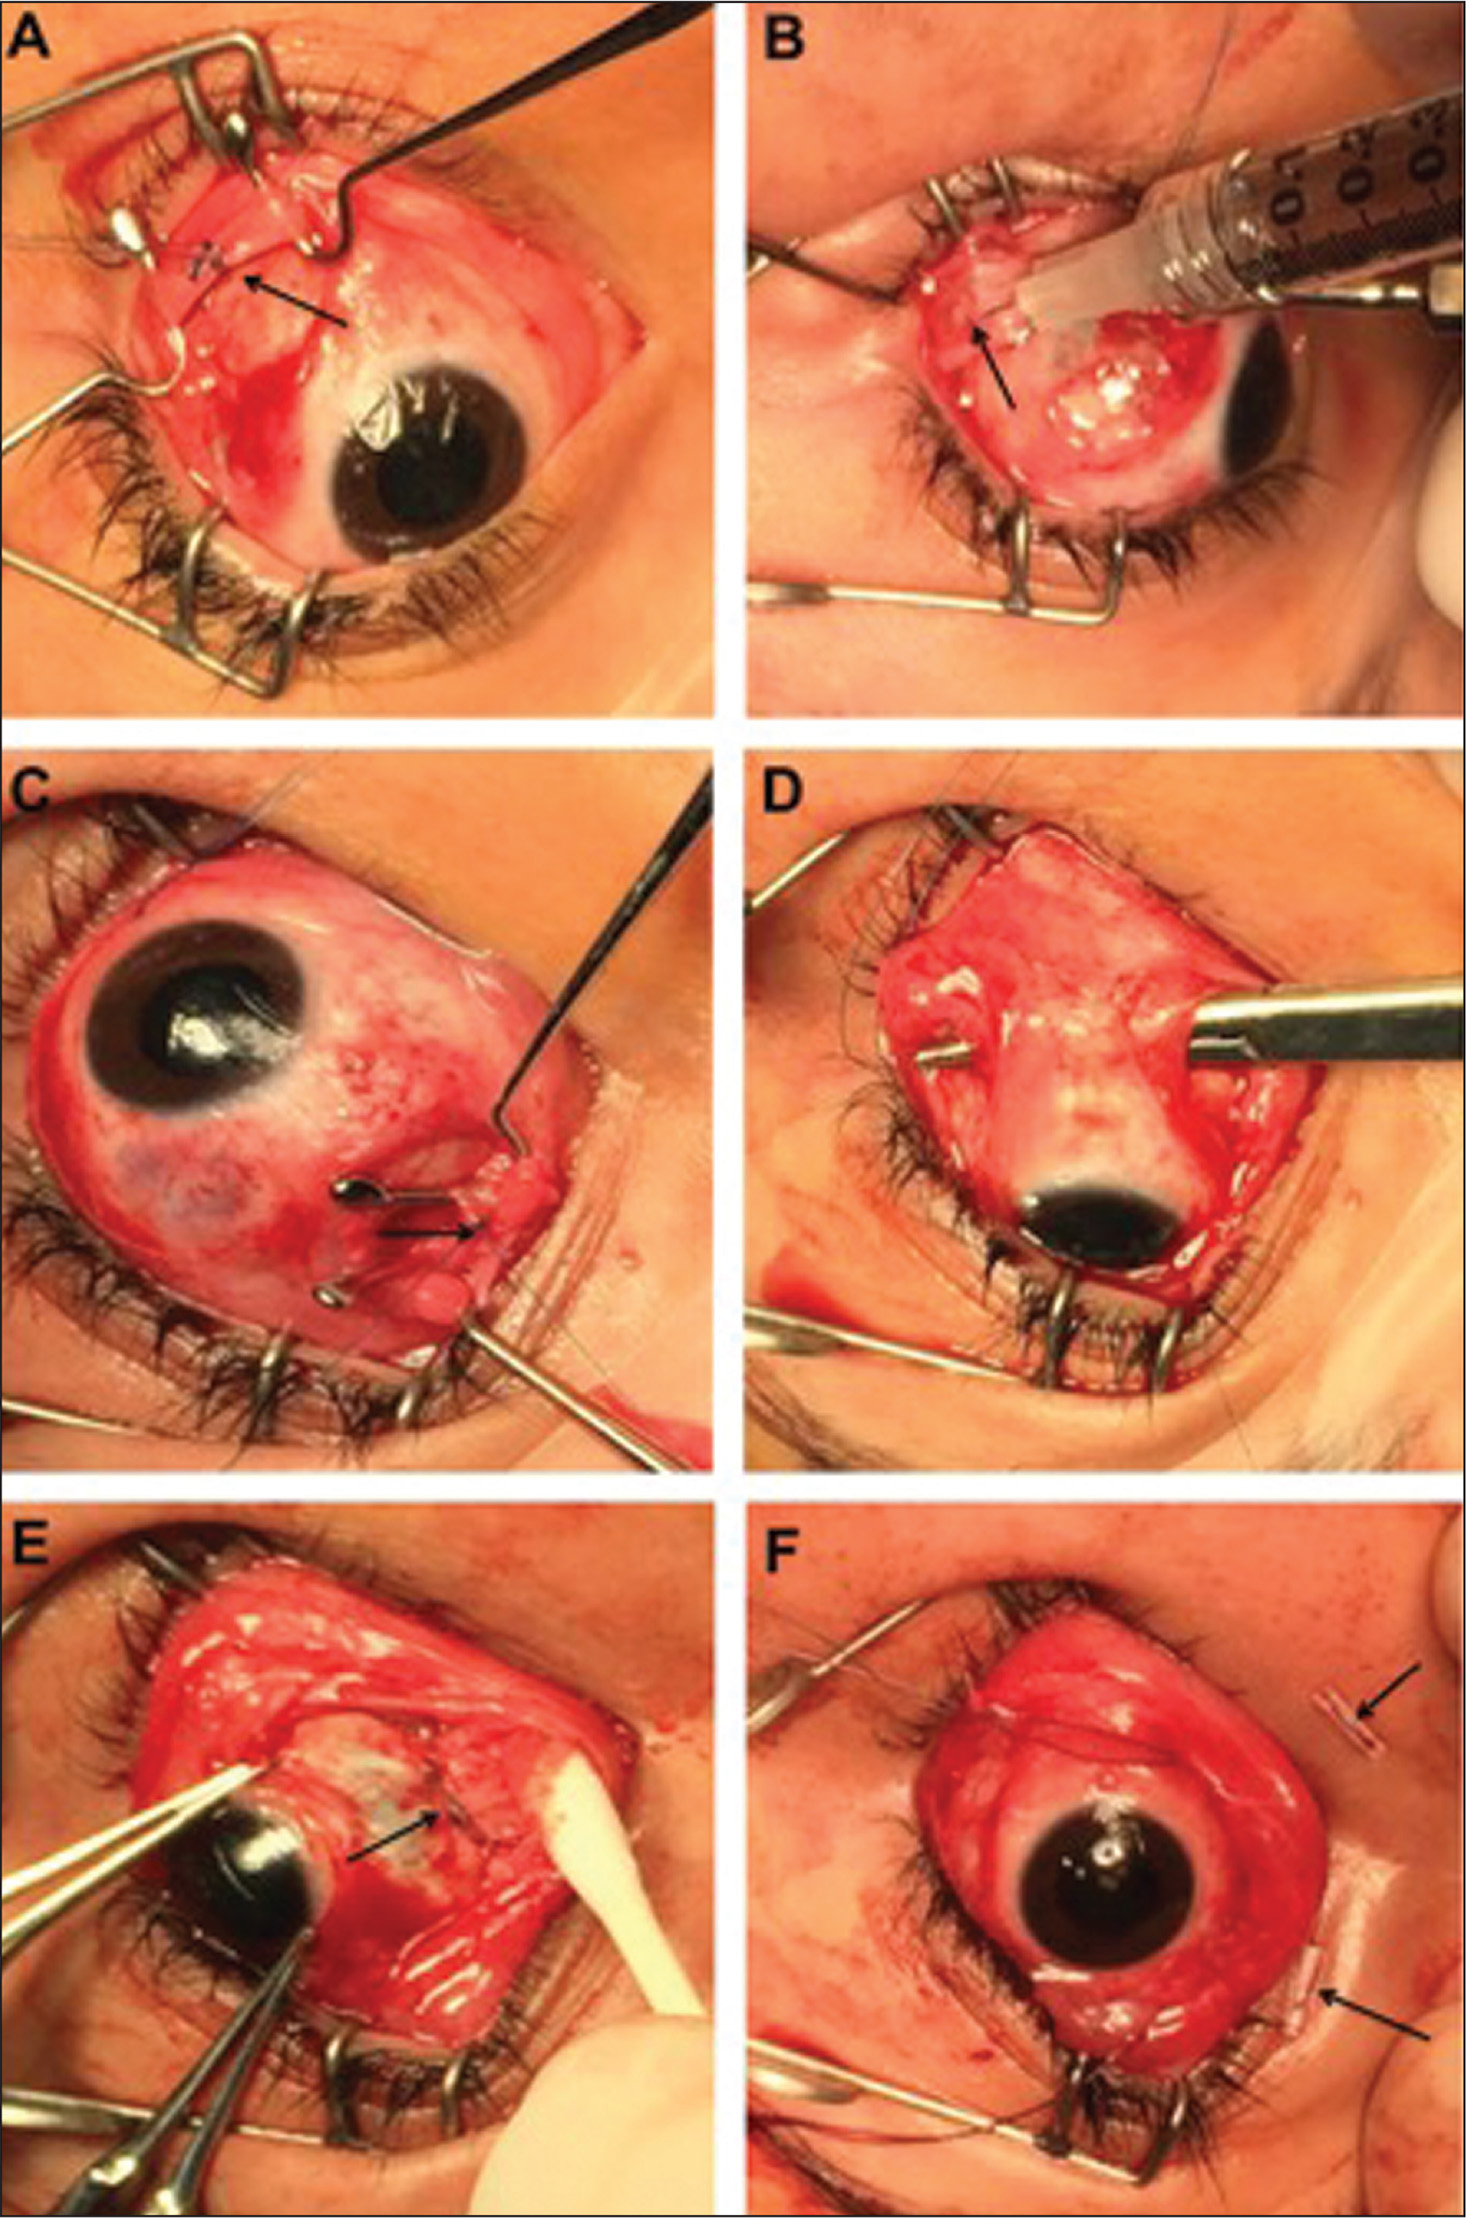 The operational stages of the surgical procedure. (A) The suture (arrow) isolating the inferior oblique muscle lateral to the inferior rectus muscle. (B) Injection of botulinum toxin (arrow) into the lateral rectus muscle. (C) Isolation of, and suture through, the superior oblique tendon medial to the superior rectus muscle (arrow). (D) A hemostat (arrow) grabbing the inferior oblique muscle by the previously placed suture and bringing it to the inferonasal quadrant of the eye under the inferior rectus muscle. (E) The joined inferior oblique muscle and superior oblique tendon (arrow) at the insertion of the medial rectus muscle. (F) The bolsters (arrow) securing two 5-0 polyglactin 910 sutures through the skin, periorbita, and episclera of the inferior and superior medial orbit and eye.